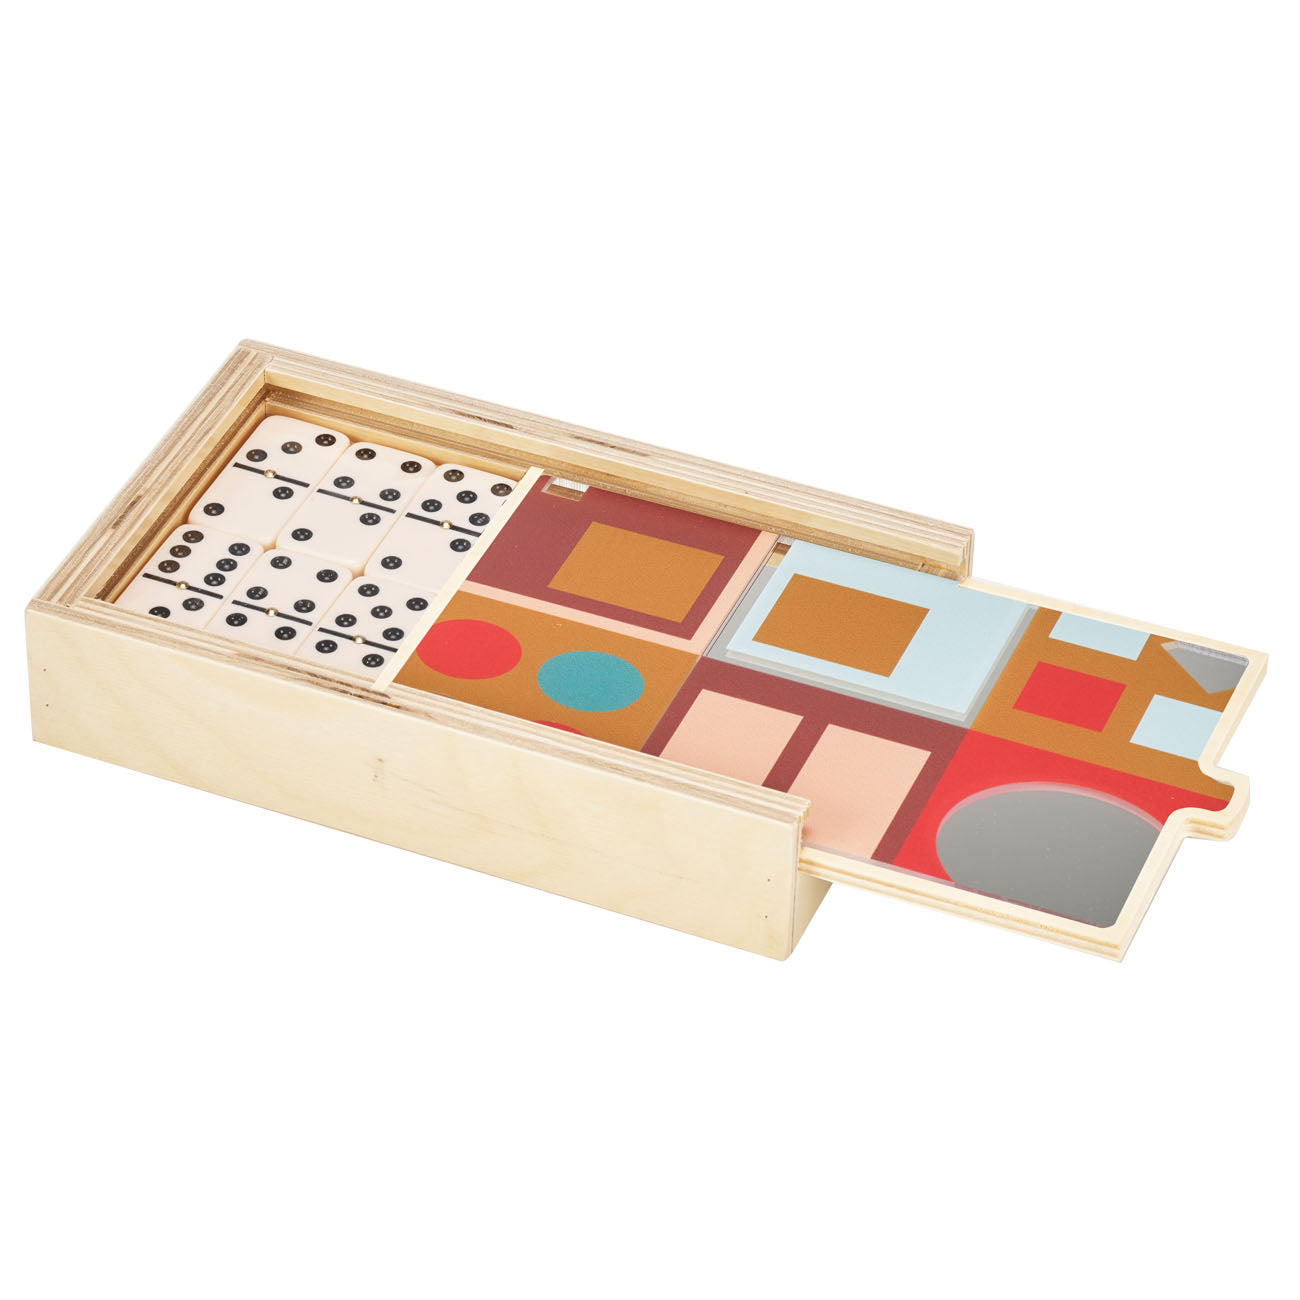 alexander peach MIRROR domino set- BRAND NEW!